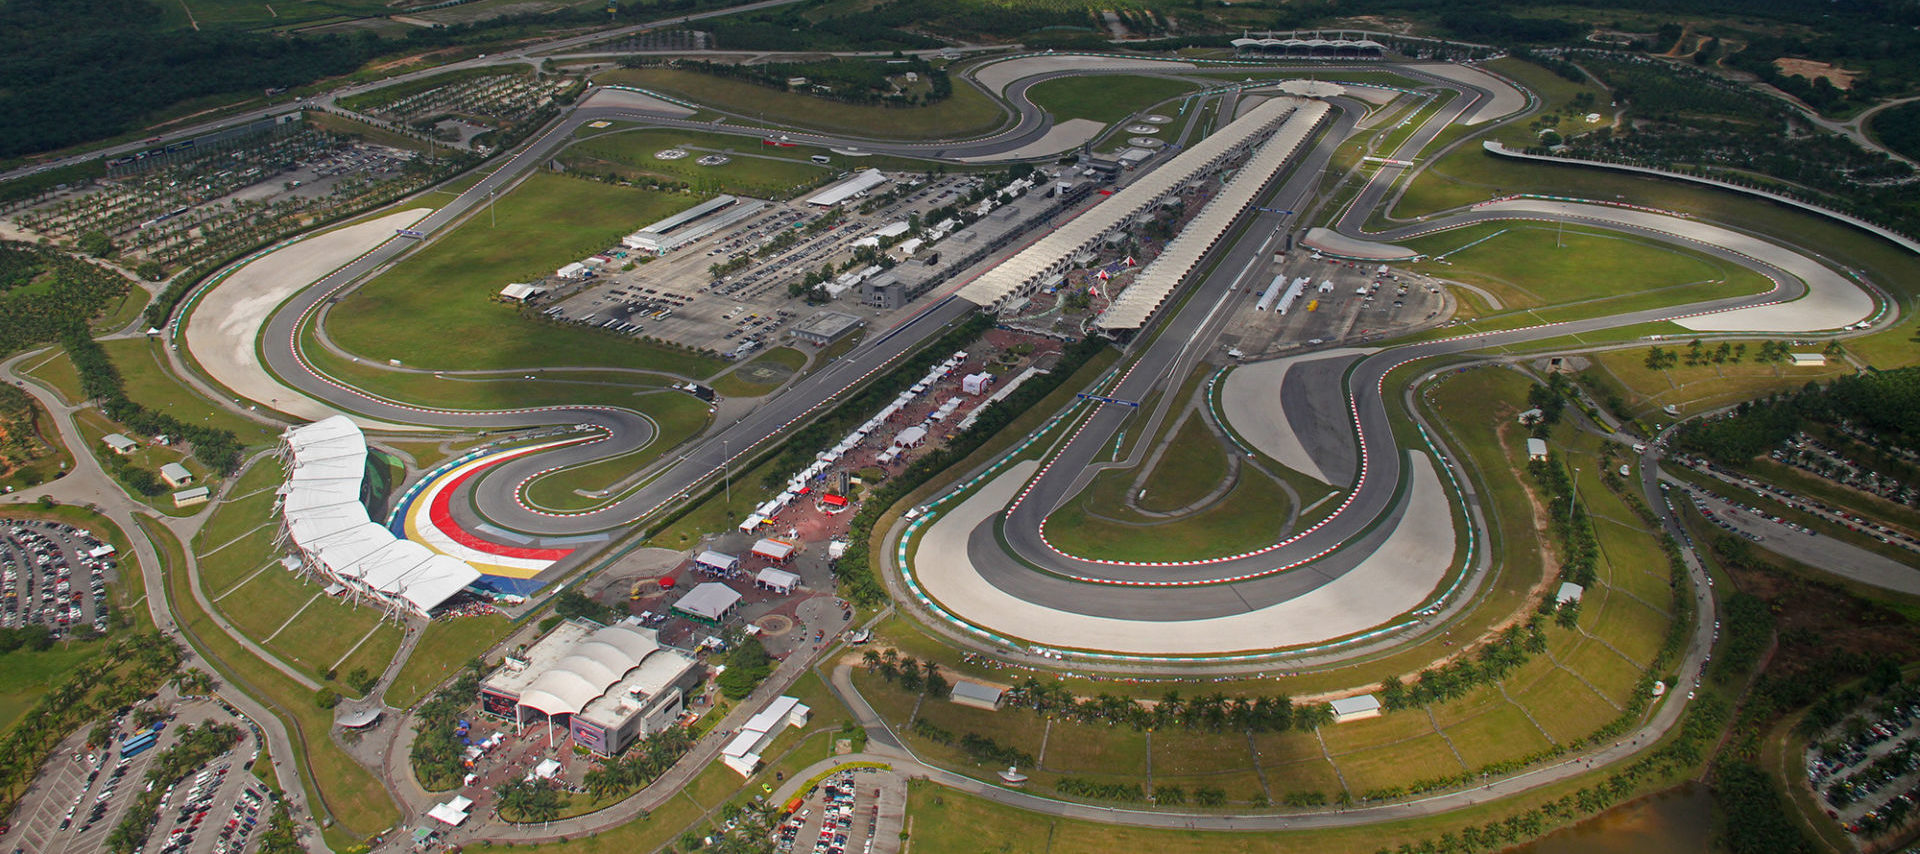 Sepang International Circuit. Photo courtesy of Michelin.